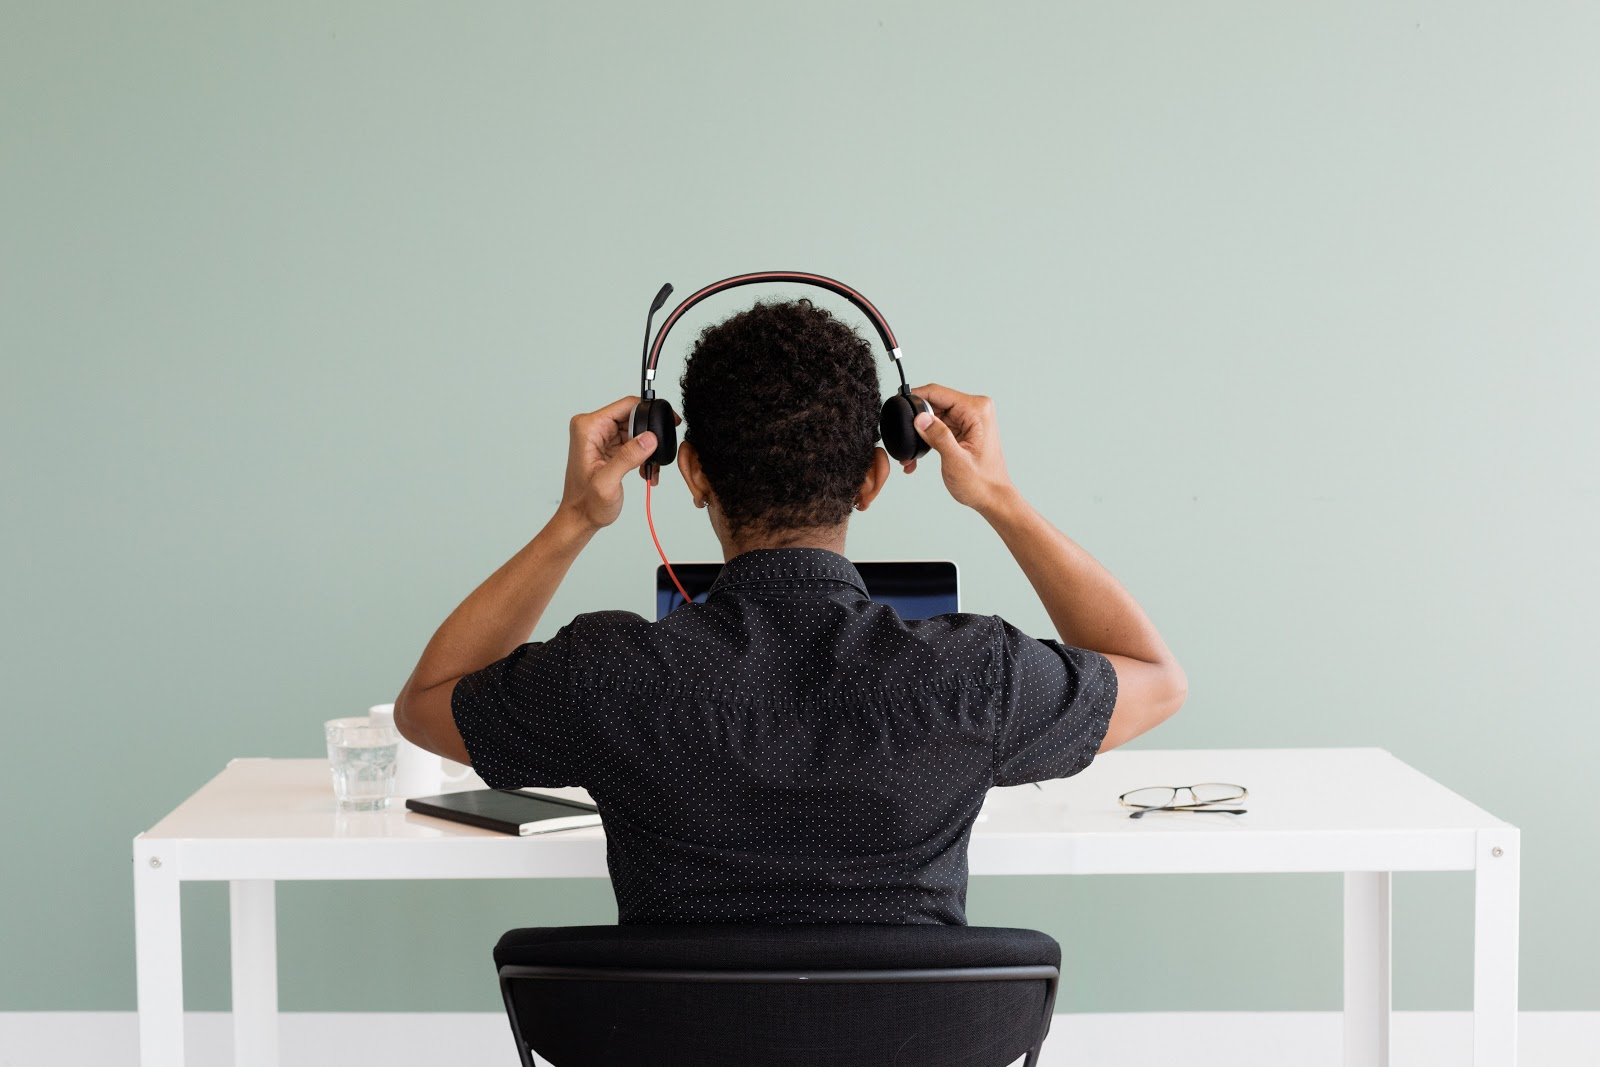 Remote call centre employee putting on headset